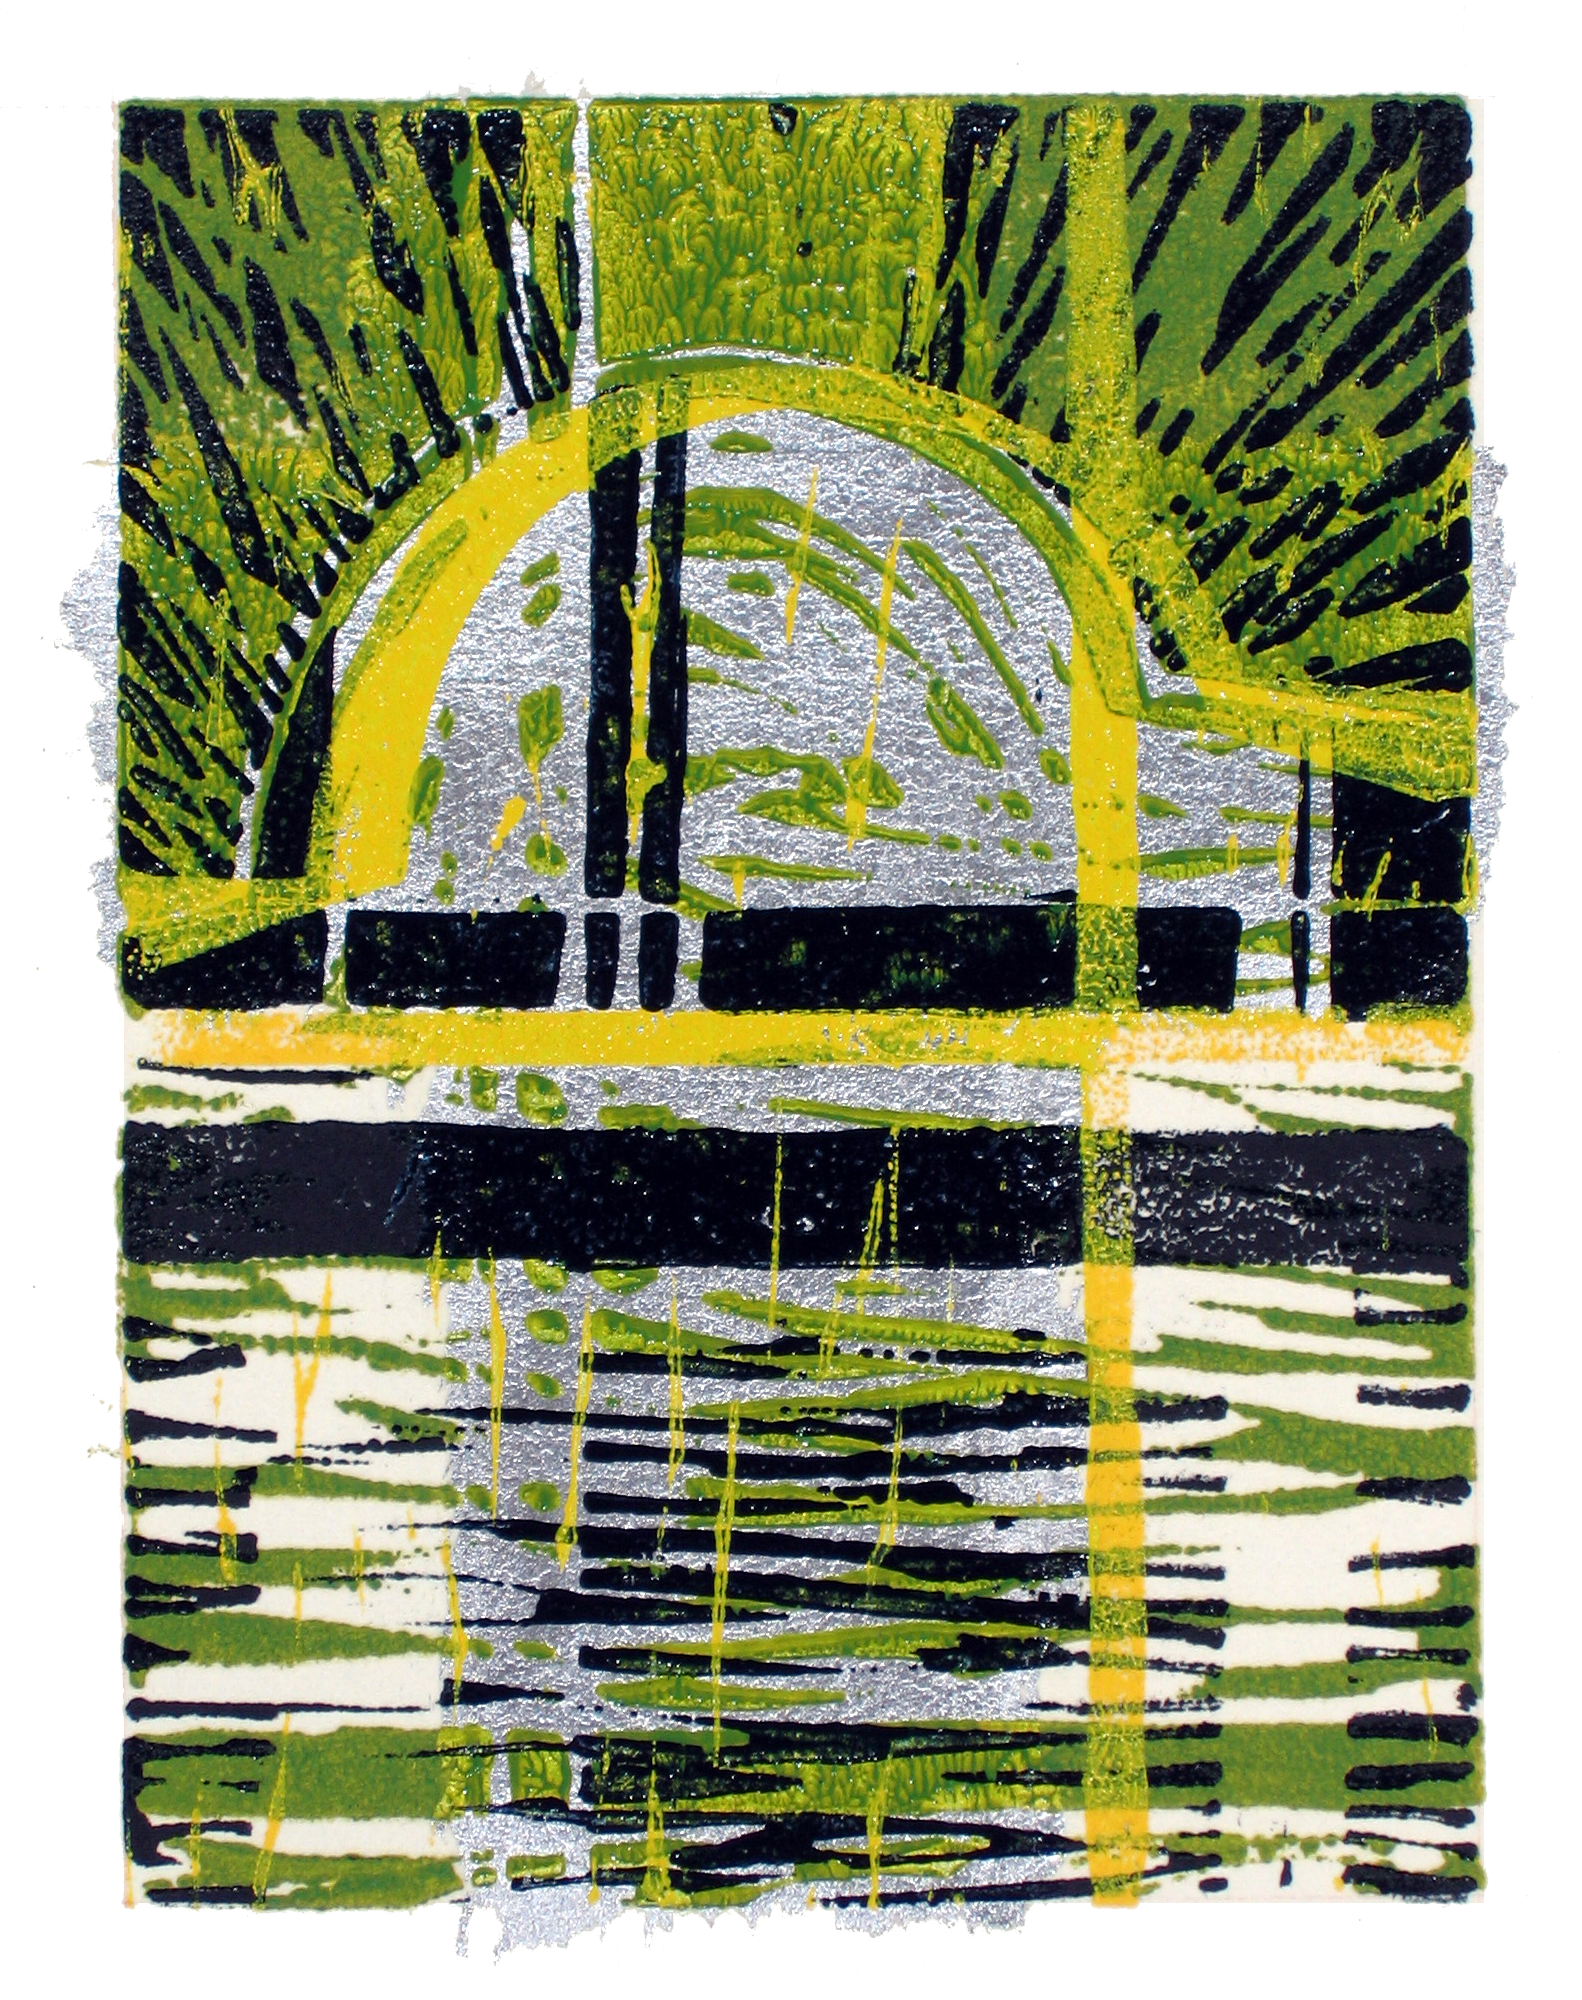 Sonya Berg Menges, Terce (the Crisp Hour), linocut, silver leaf, pastel on paper, 9 x 6.5 in., 2005.png